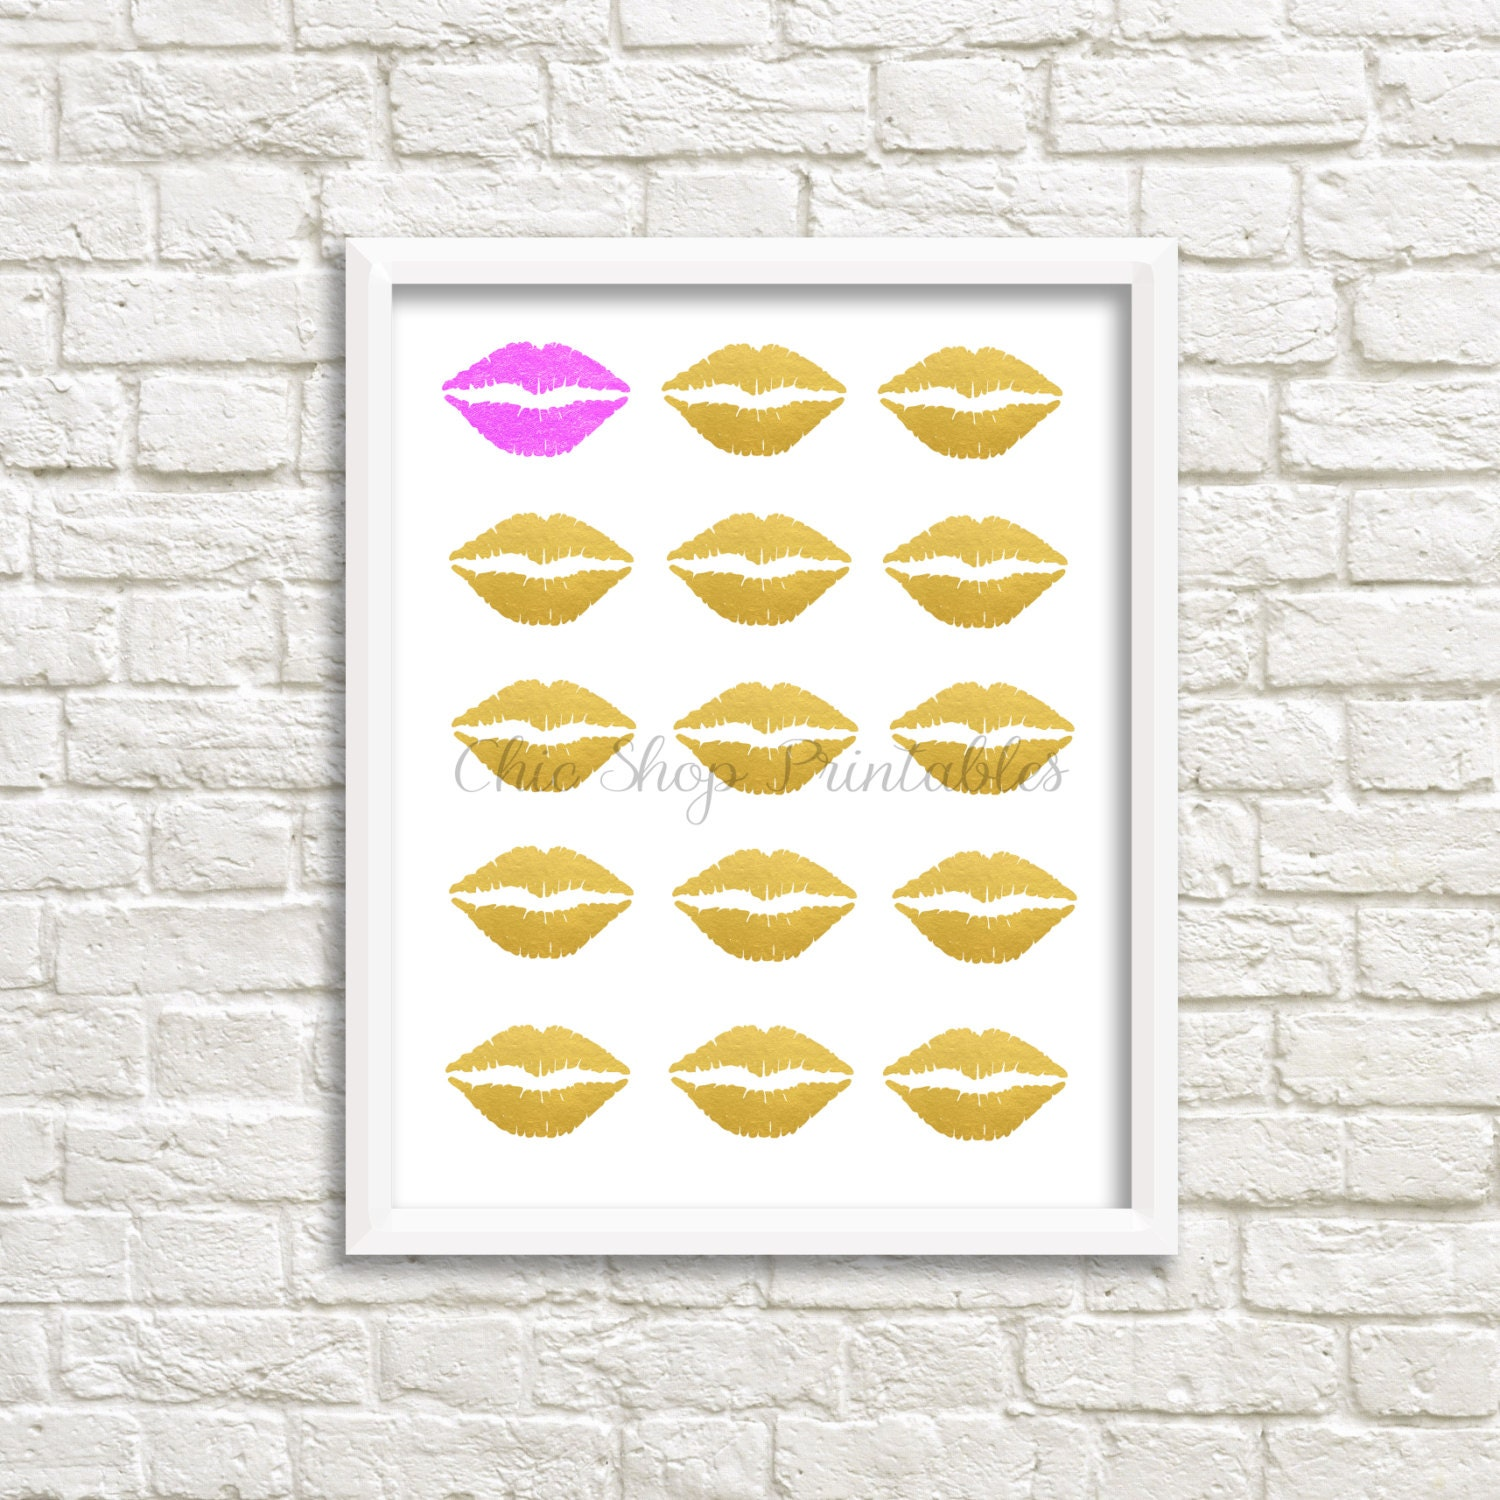 Dorable Lips Wall Decor Images - Wall Art Collections ...